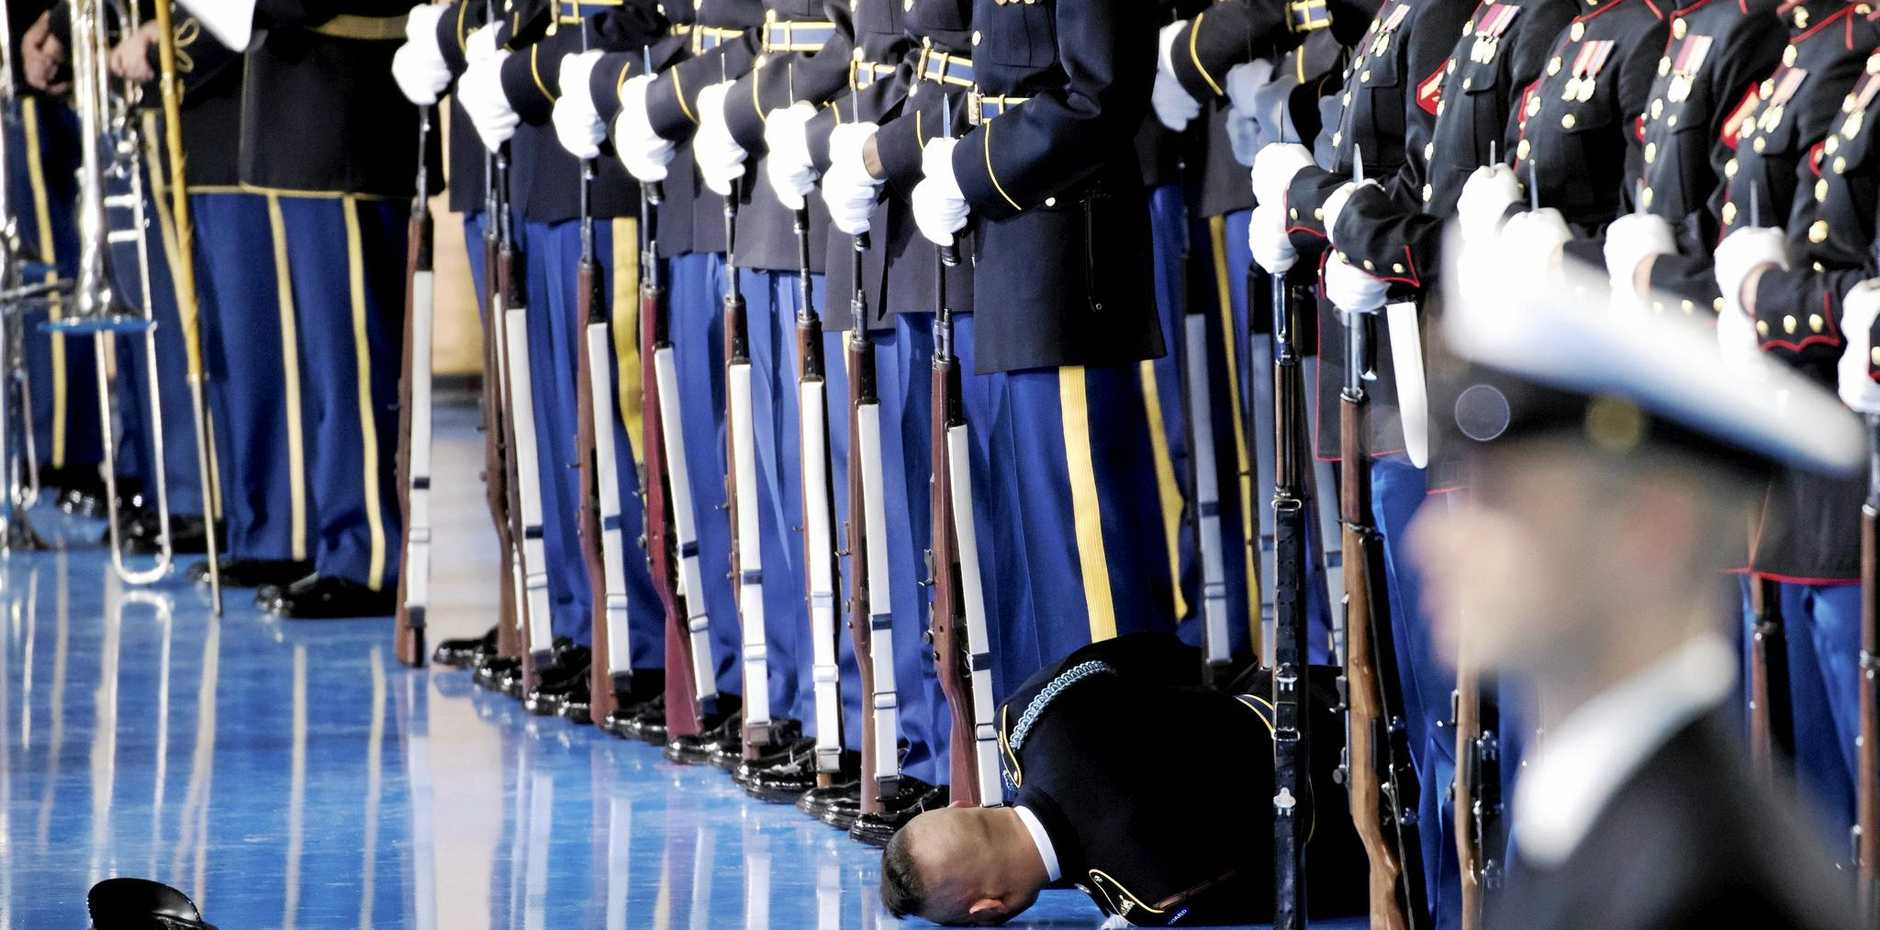 A member of the US Army honour guard lies on the floor after passing out during an Armed Forces Full Honor Review Farewell Tribute to US President Barack Obama at Conmy Hall, Joint Base Myer-Henderson Hall in Arlington, Virginia.